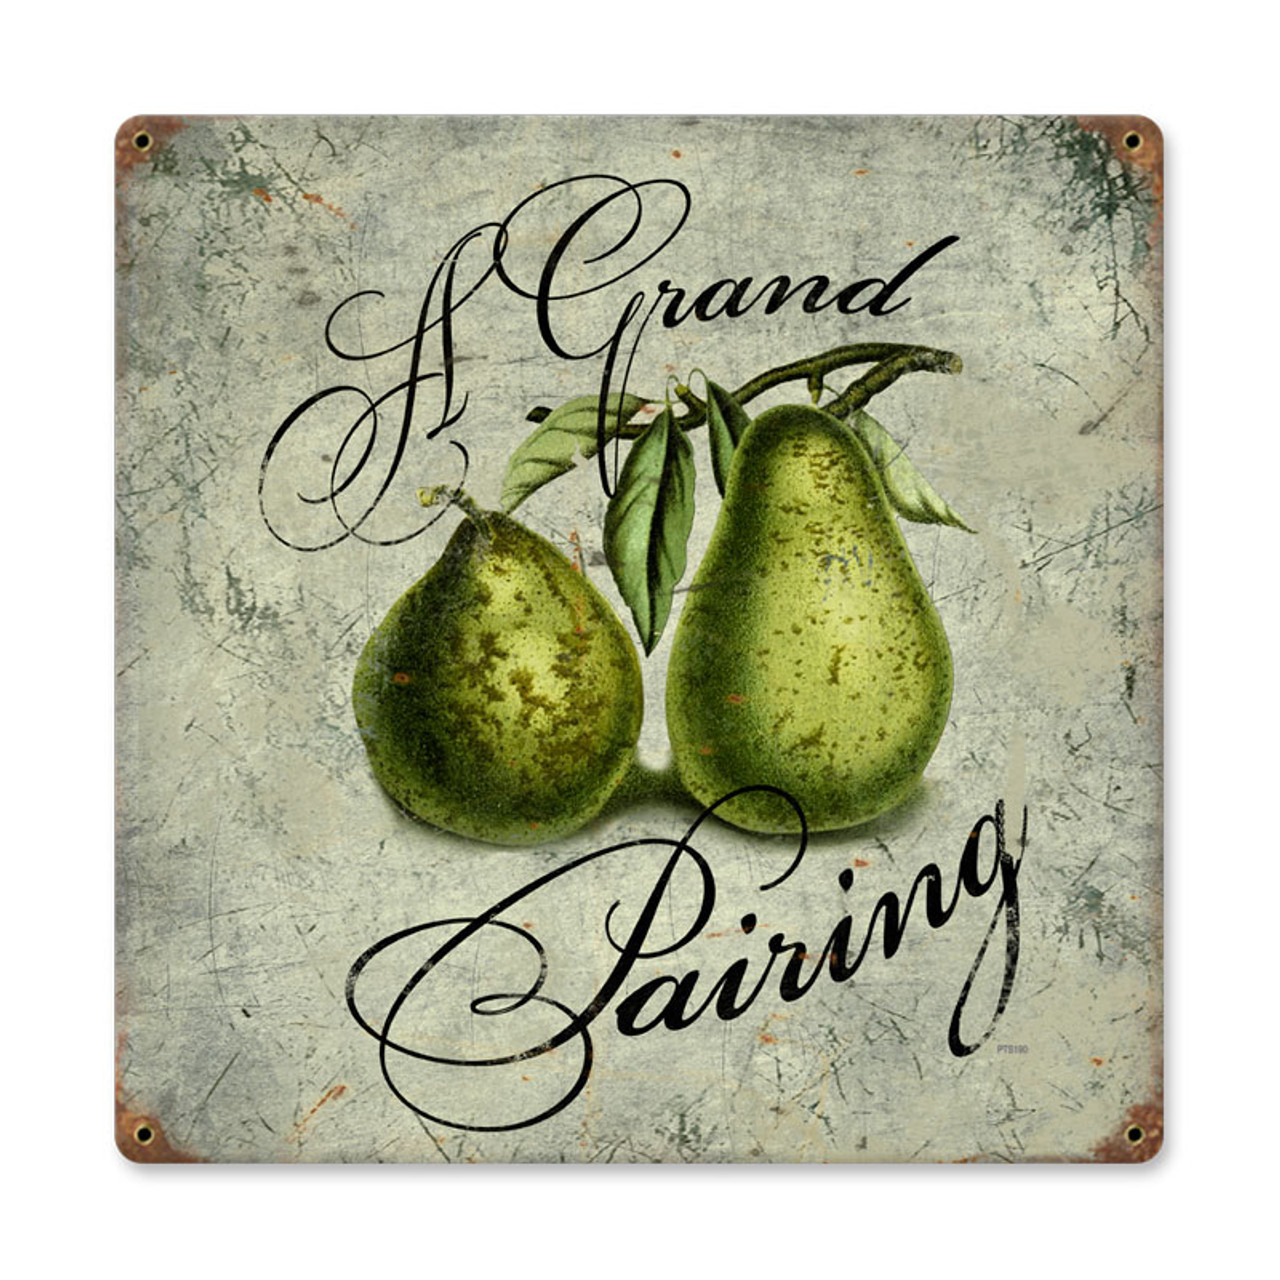 Vintage Pear Pairing Metal Sign   Inches 12 x 12 Inches